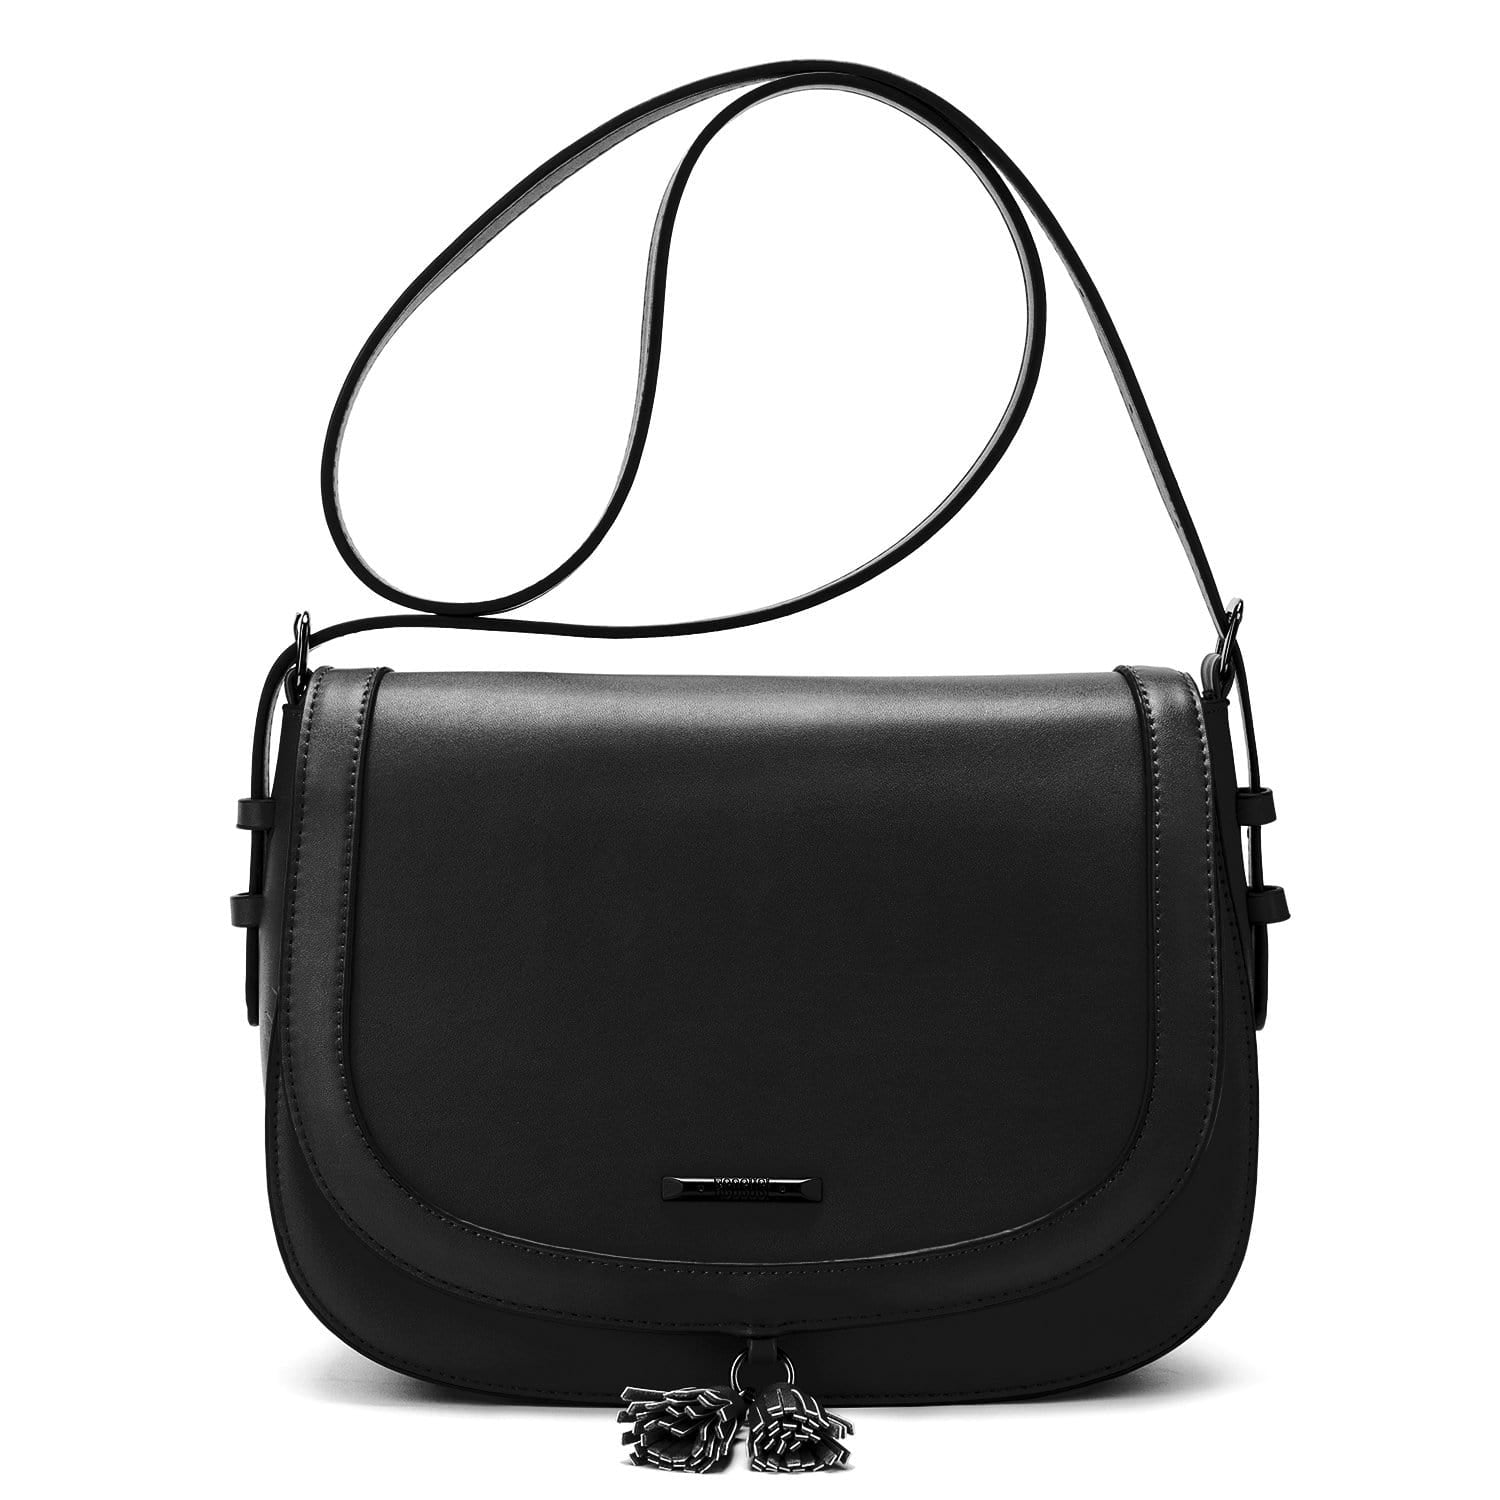 Women s Saddle Bag Purses Crossbody Shoulder Bag with Flap Top   Tassel  Satchel for 9.7 inch 48146104824f3